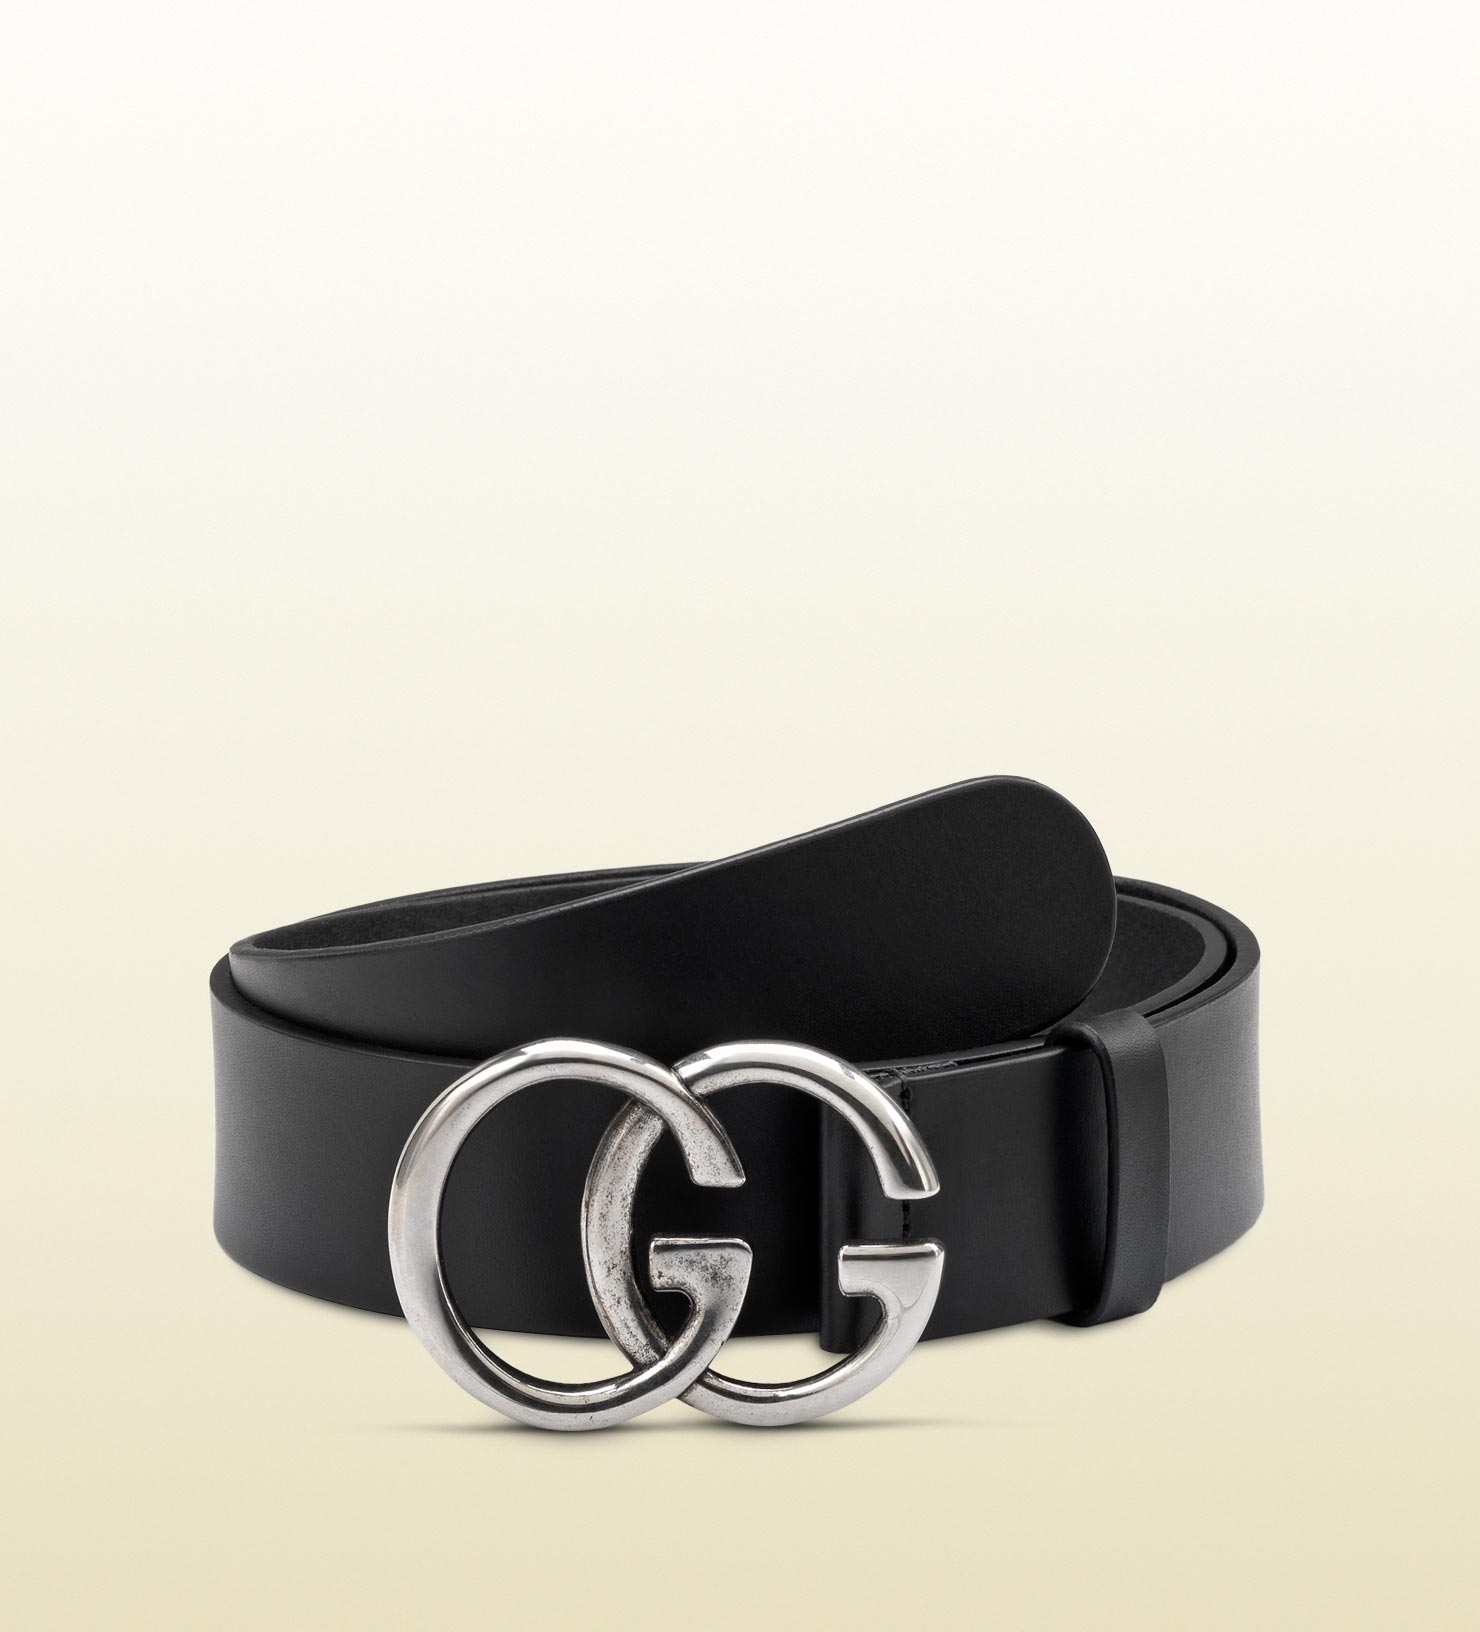 gucci belt with double g buckle in black for men lyst